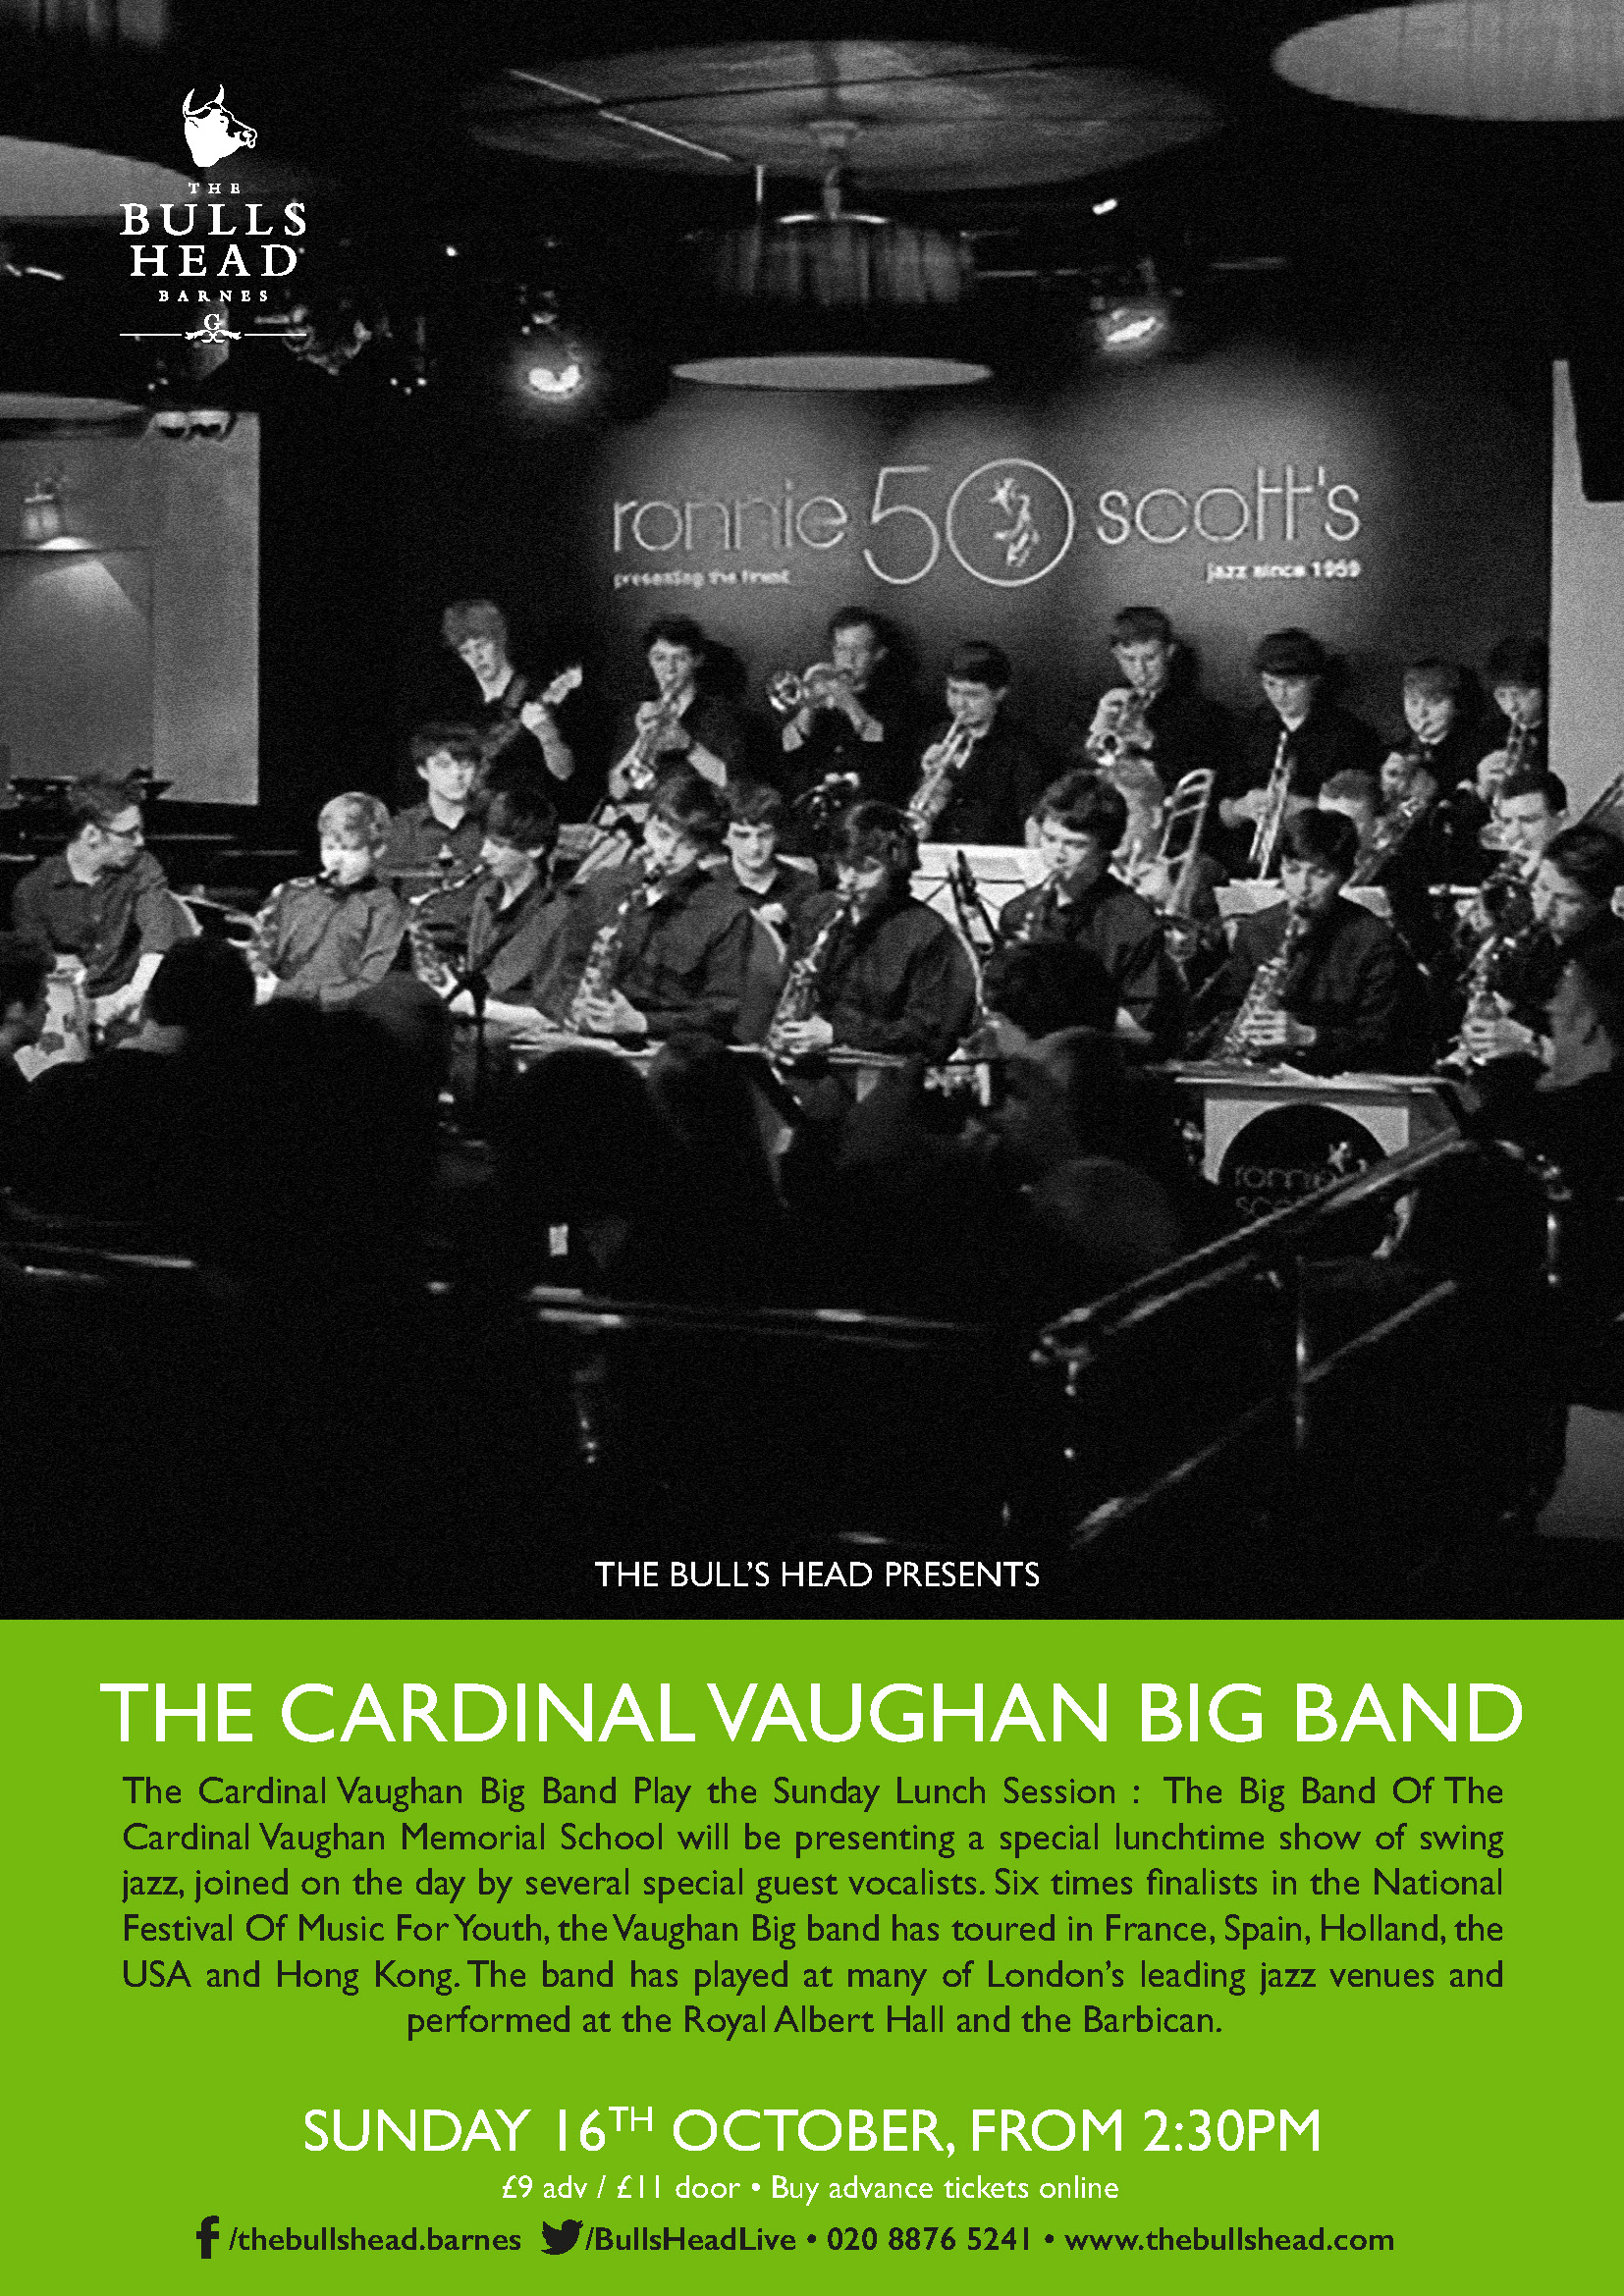 The Cardinal Vaughan Big Band Play the Sunday Lunch Session